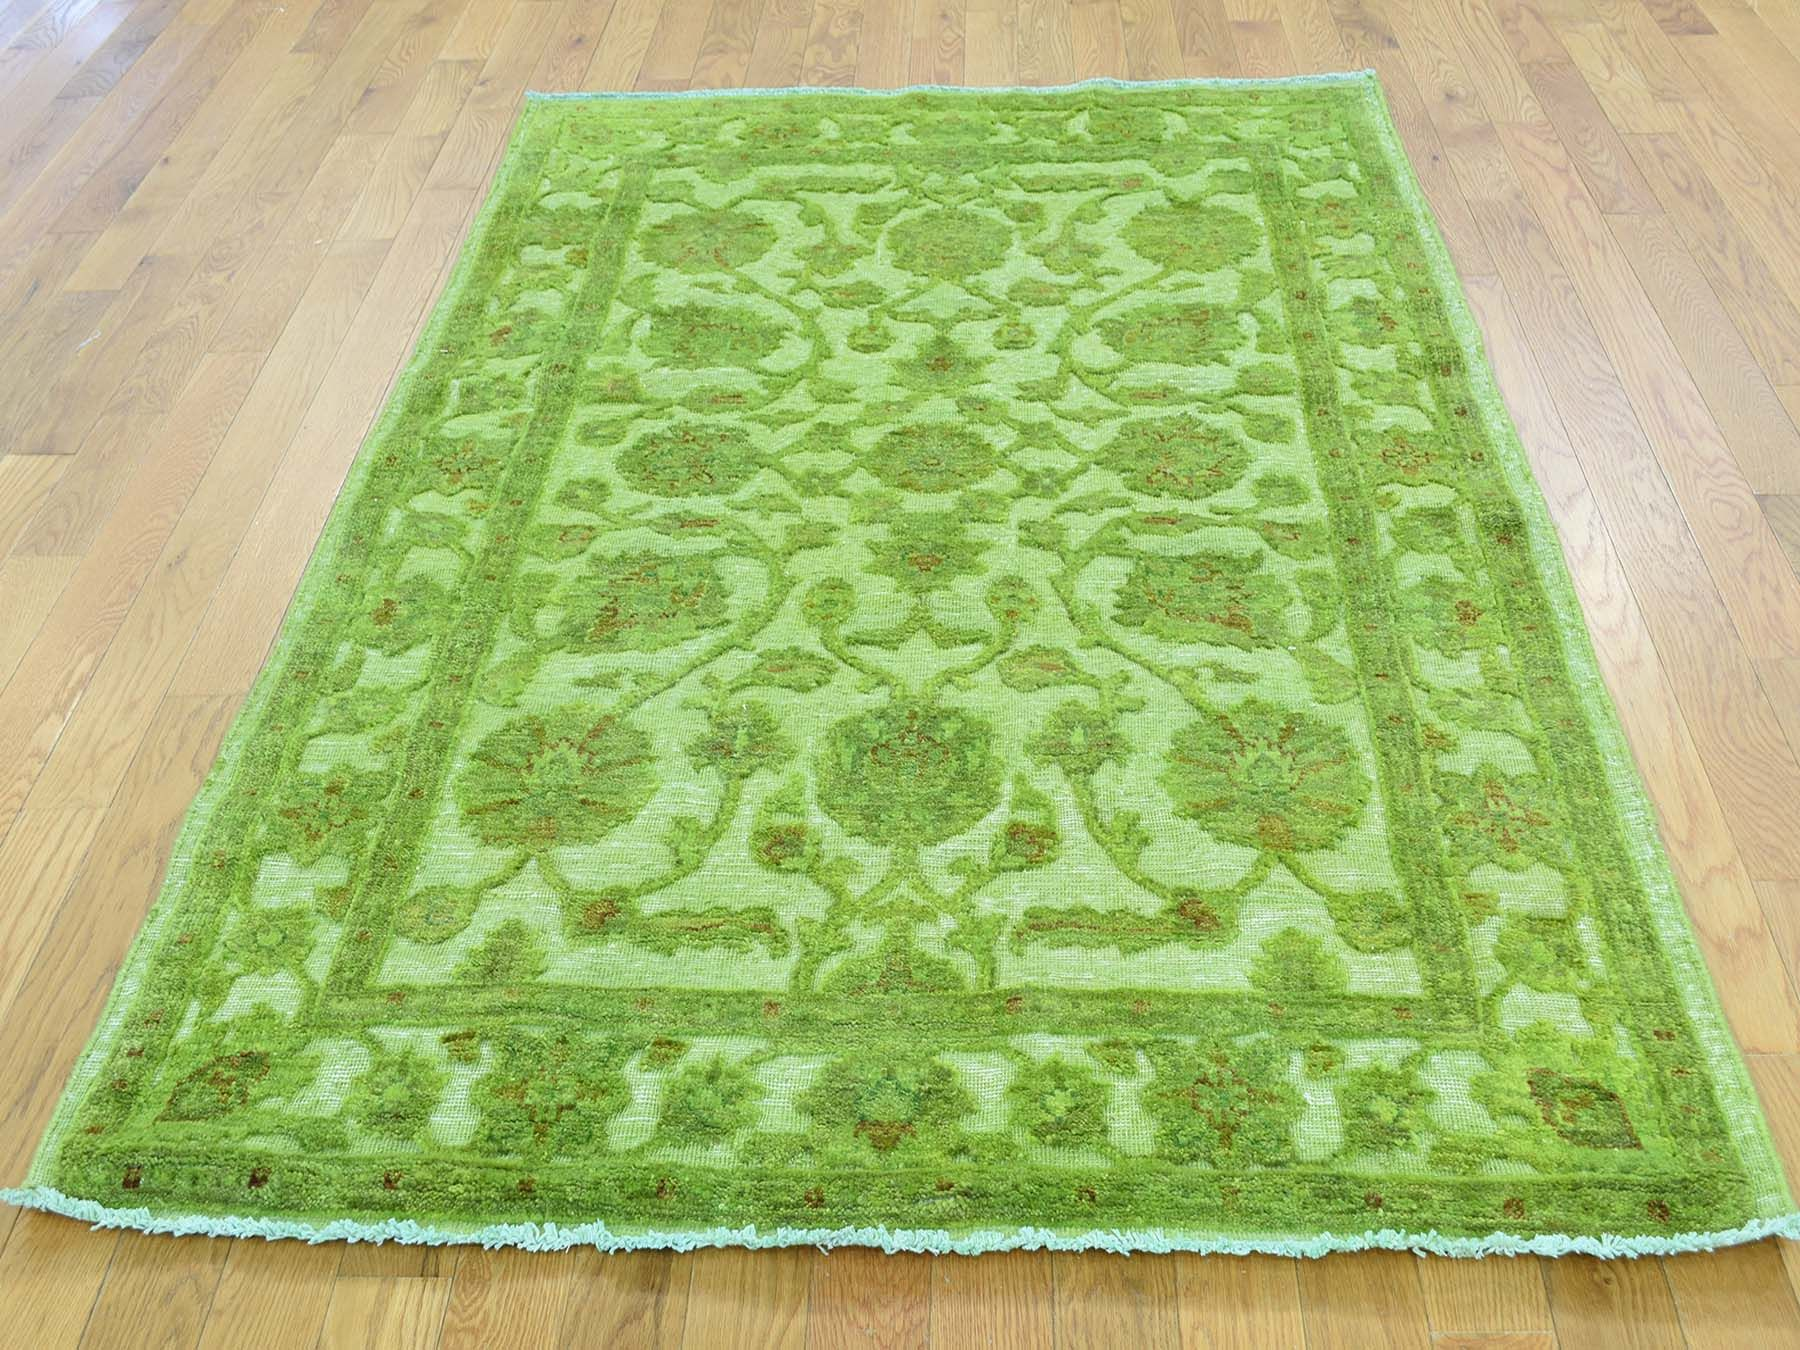 4 X6 2 Hand Knotted Overdyed Hi And Low Pile Pure Wool Oriental Rug Wool Oriental Rugs Store Sale Green Oriental Wool Rugs Colorful Rugs Oriental Rug